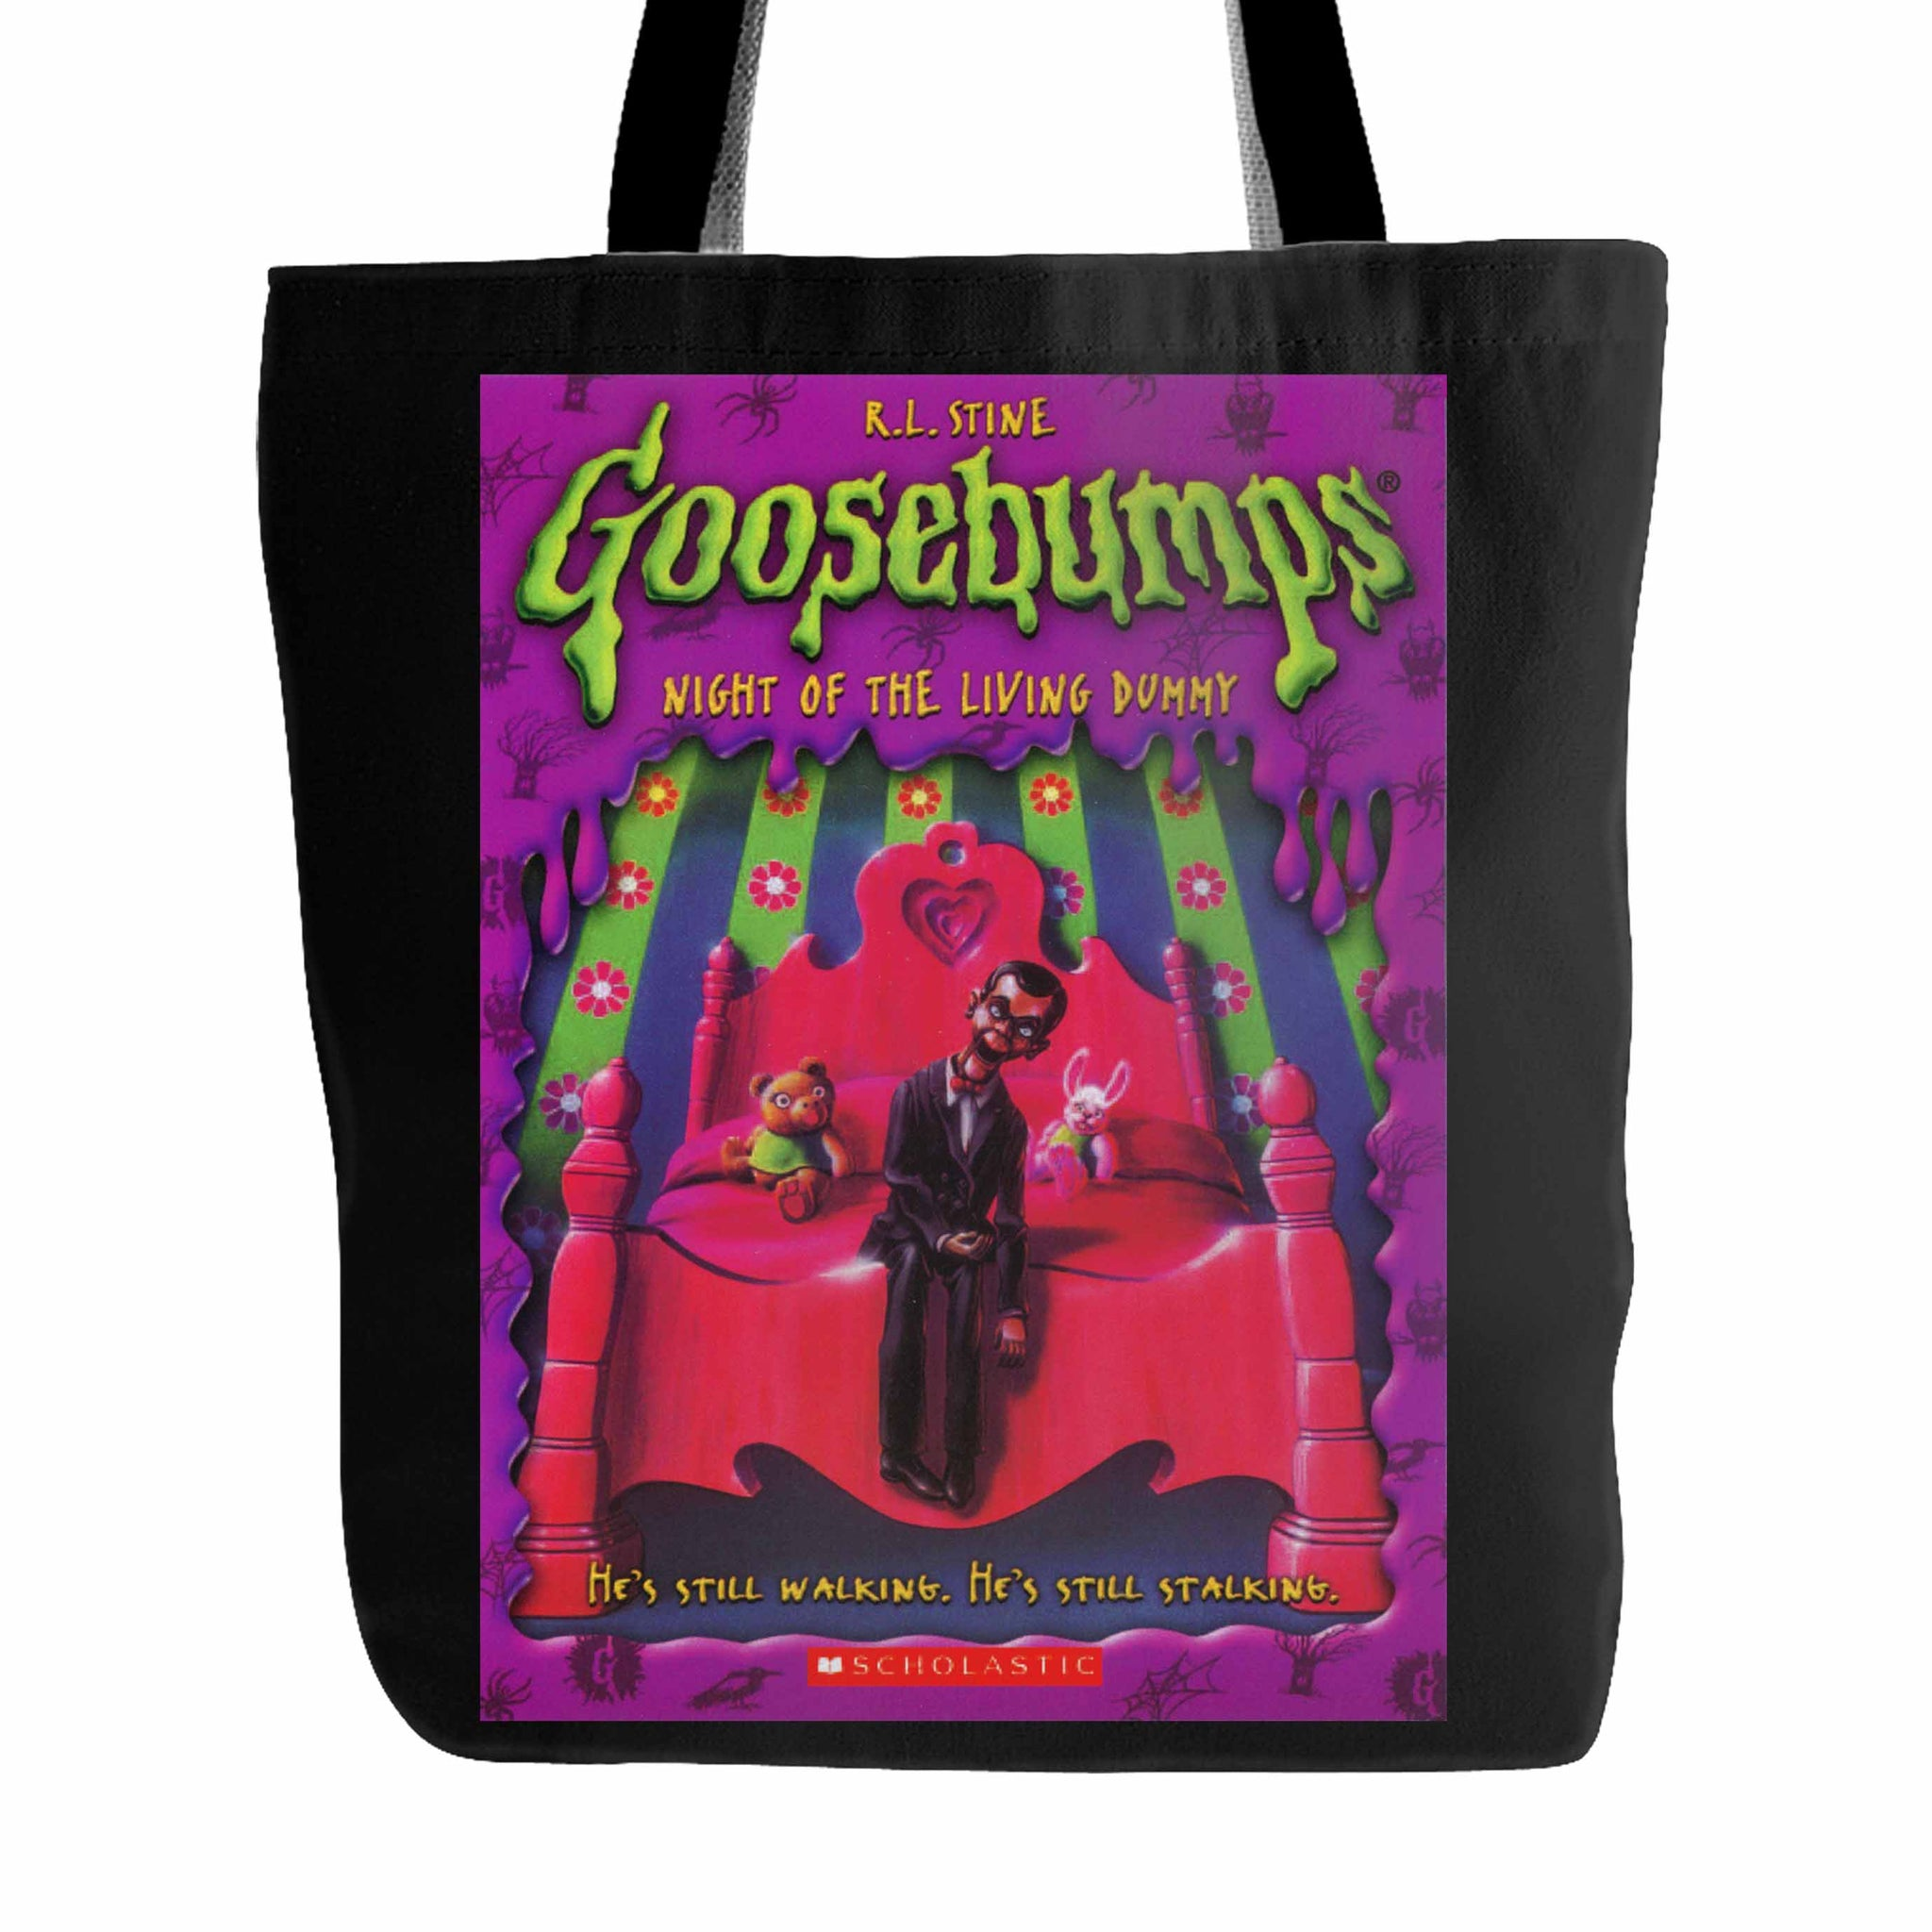 Goosebumps Night Of The Living Dummy Tote Bag